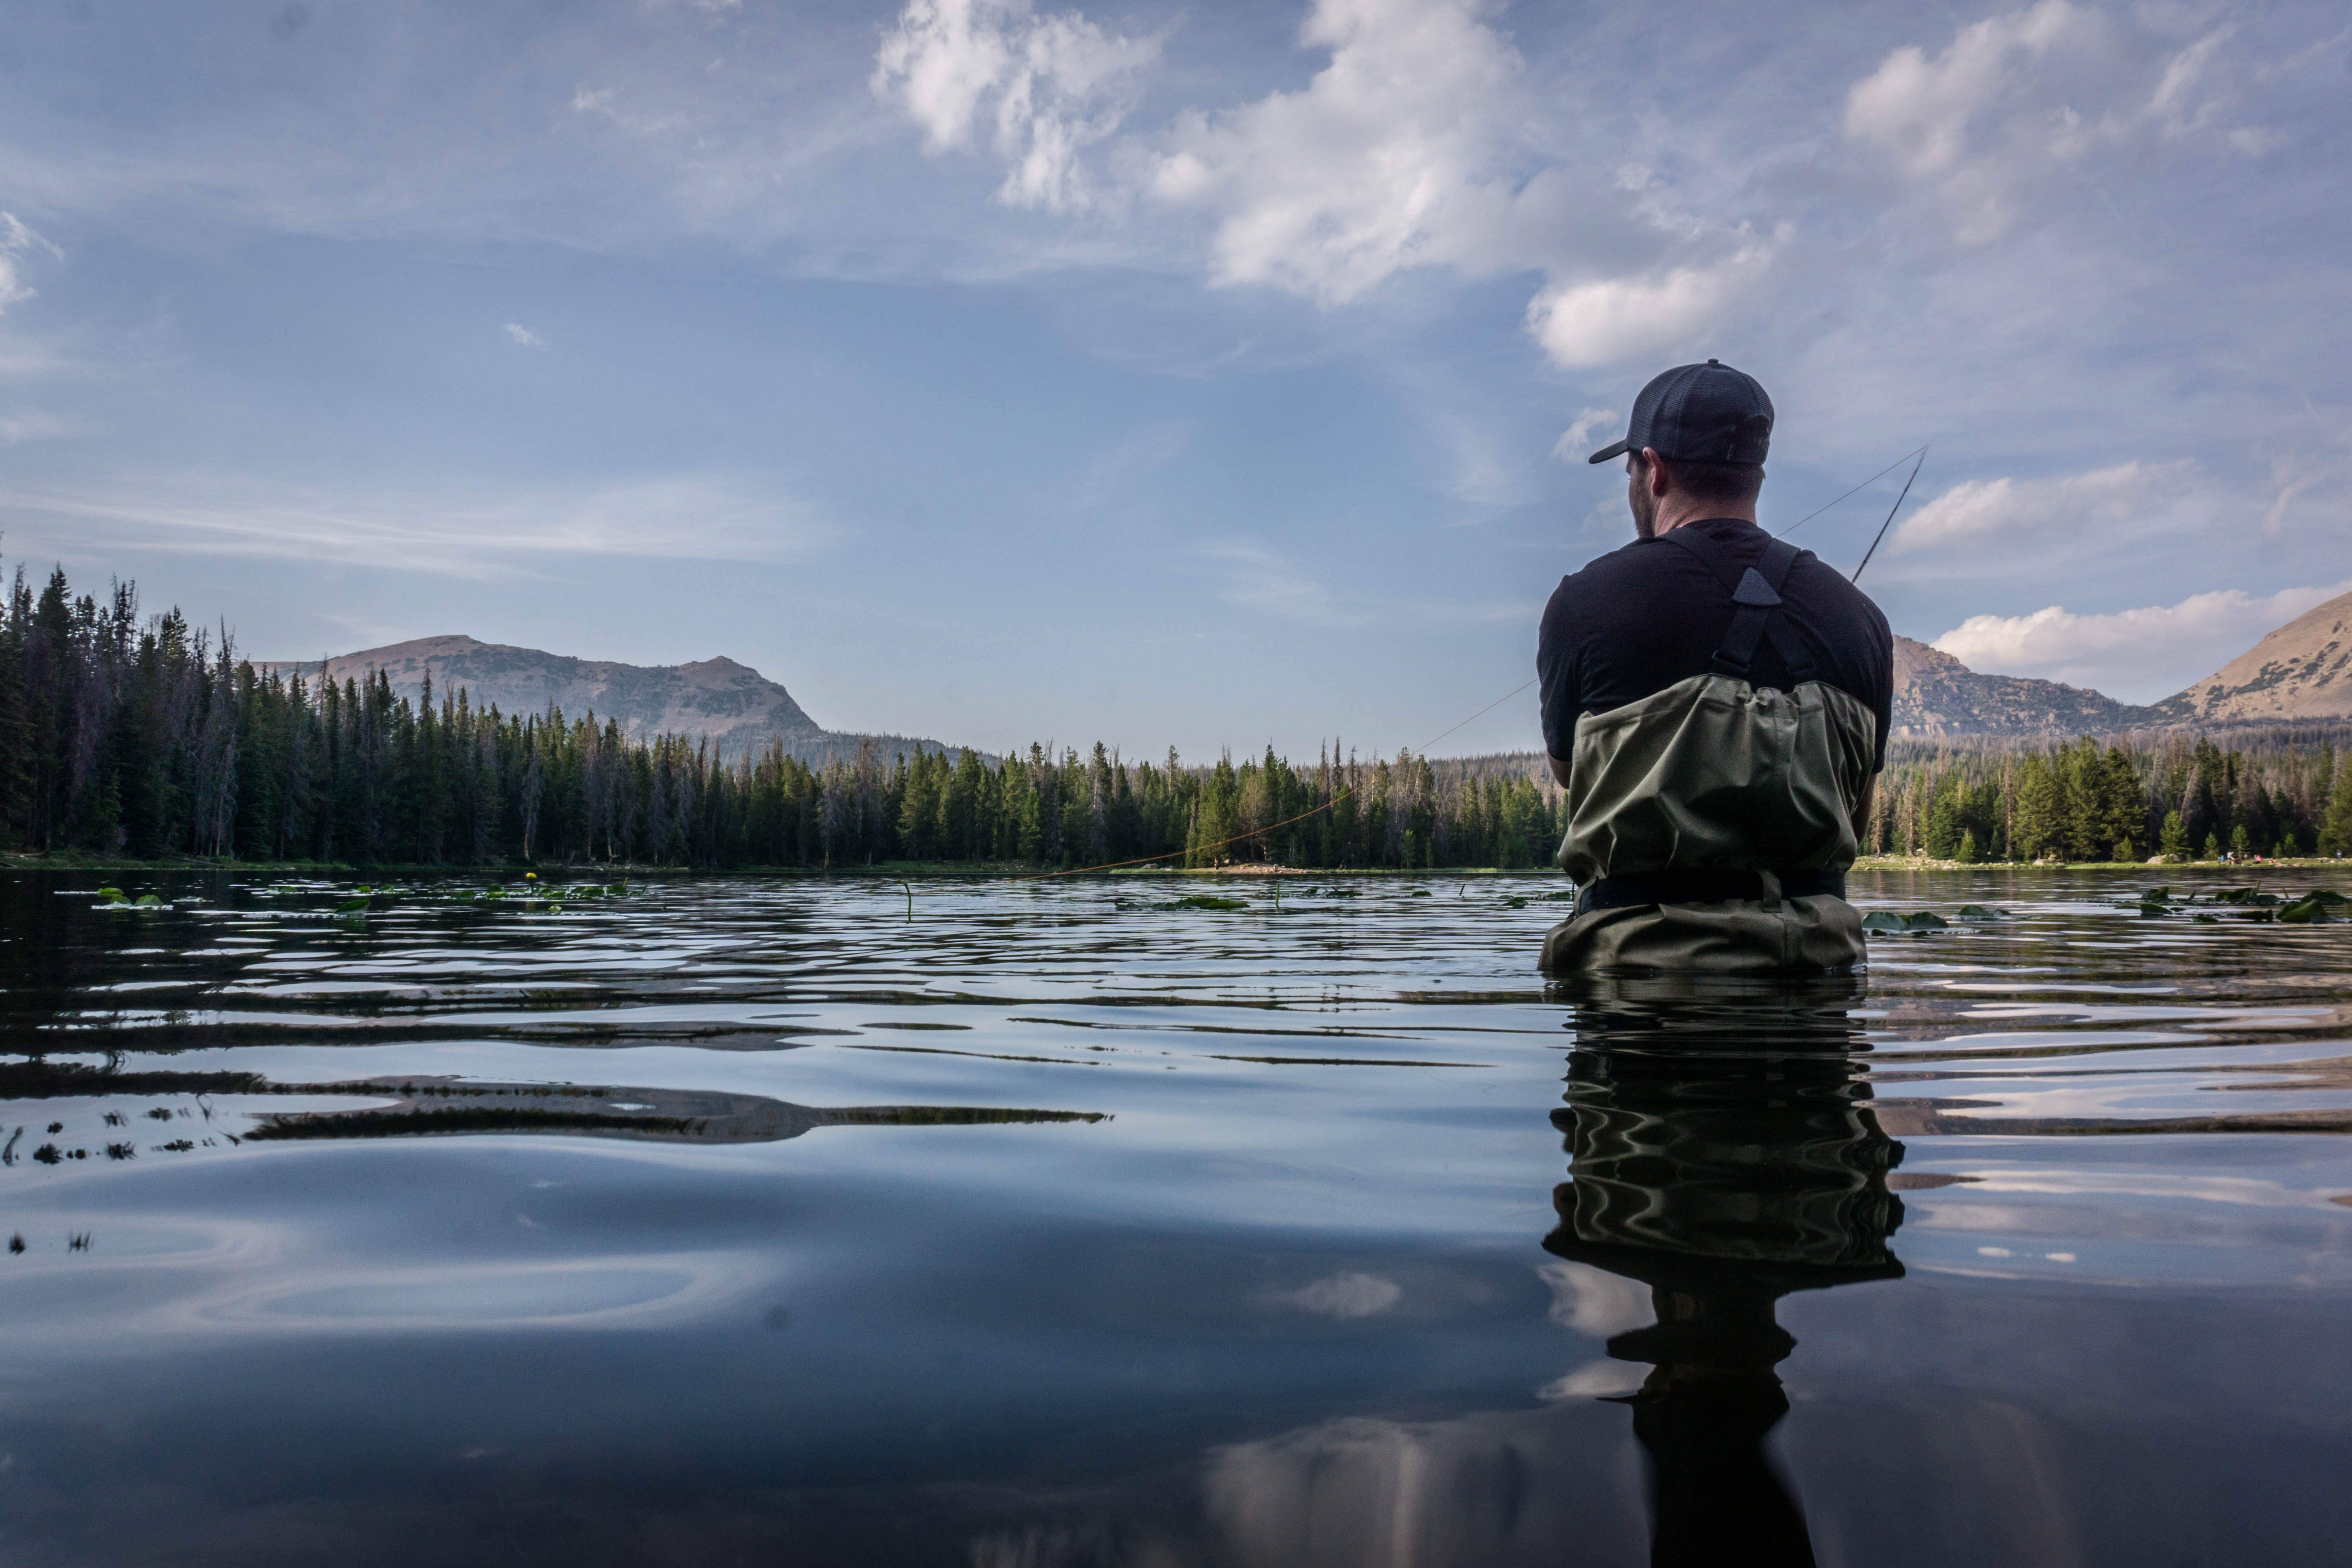 man in black and gray shirt wearing cap on body of water during daytime